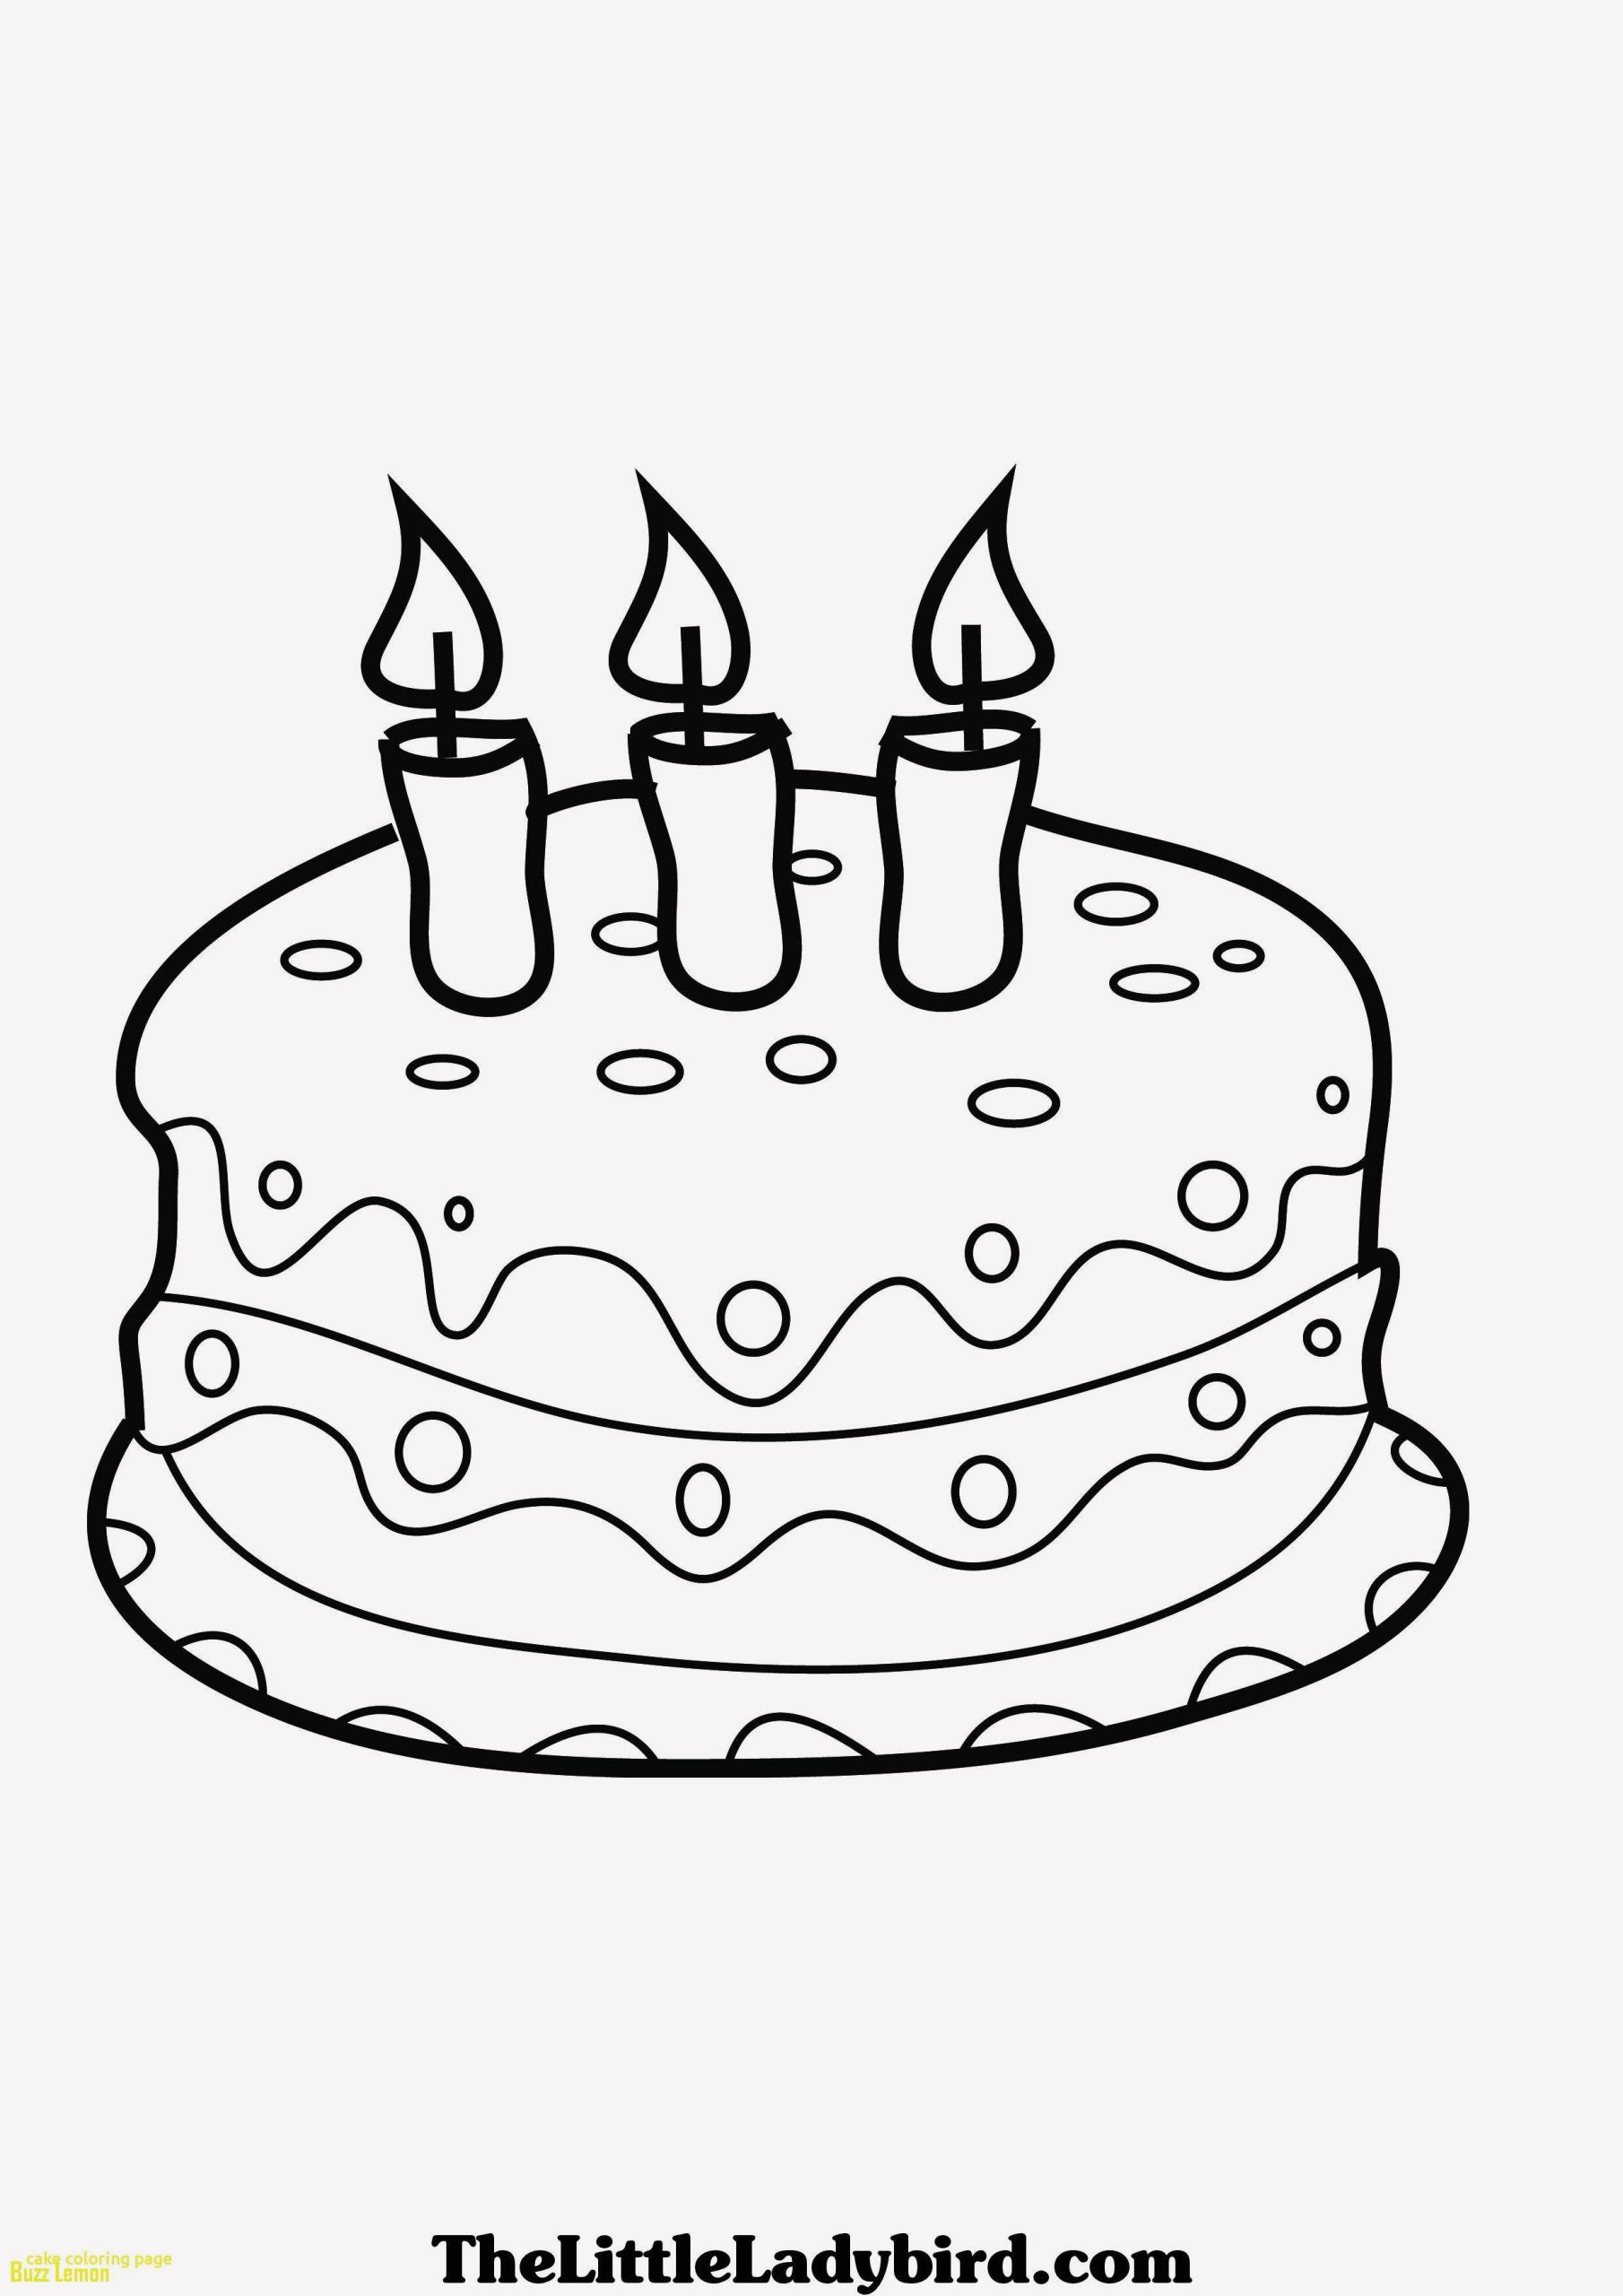 20 Hello Kitty Cake Coloring Pages In 2020 Birthday Coloring Pages Happy Birthday Coloring Pages Coloring Pages For Kids